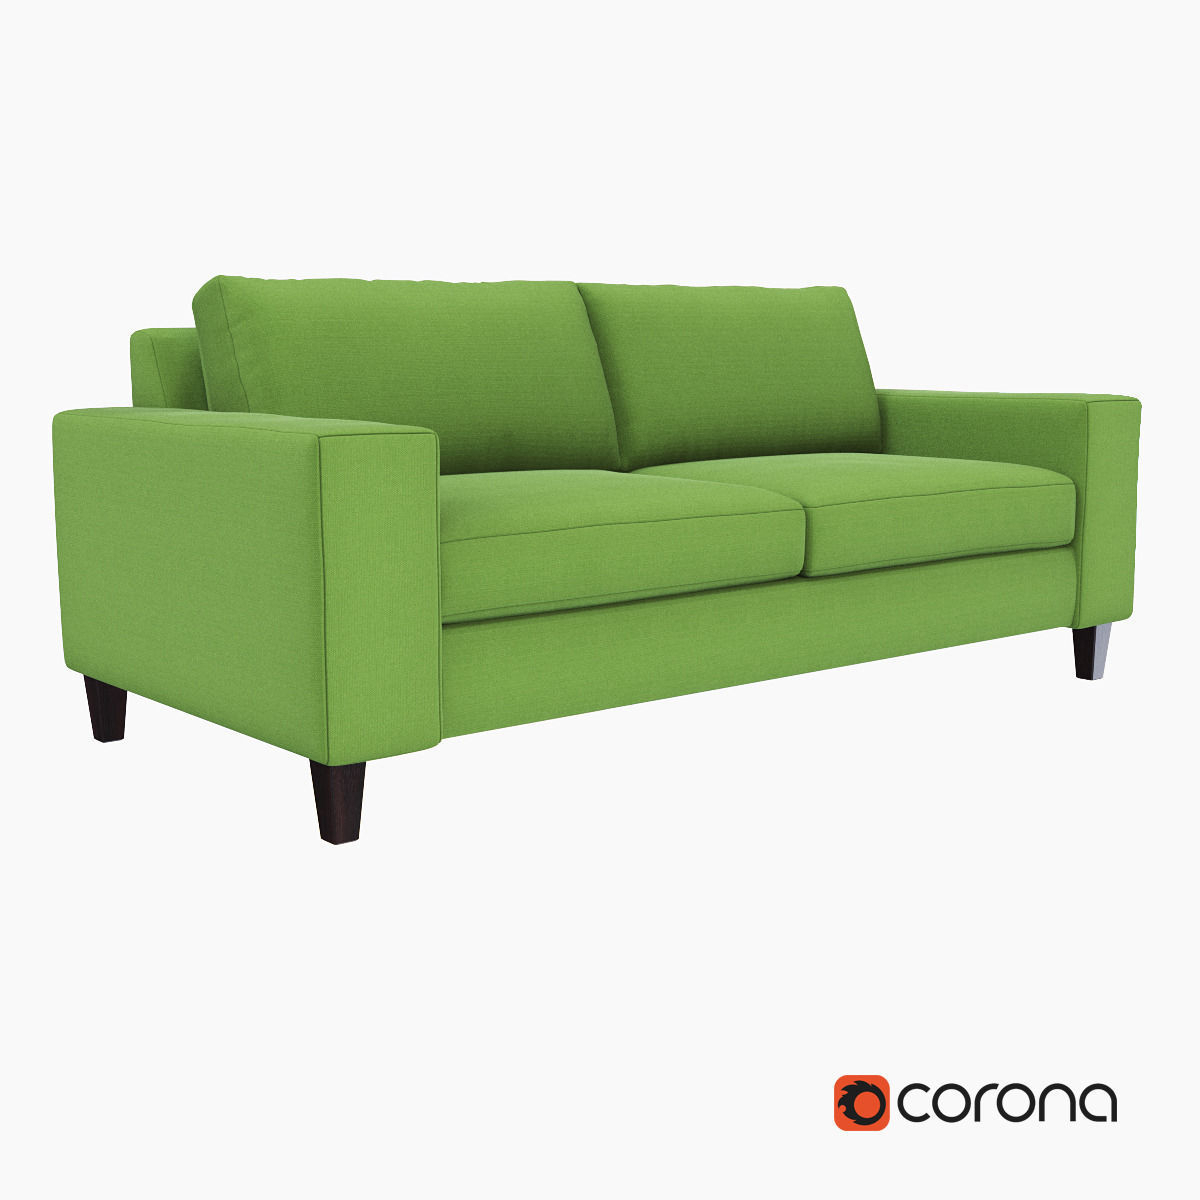 3D West Elm York Sofa | Cgtrader Throughout Elm Sofa Chairs (View 20 of 25)